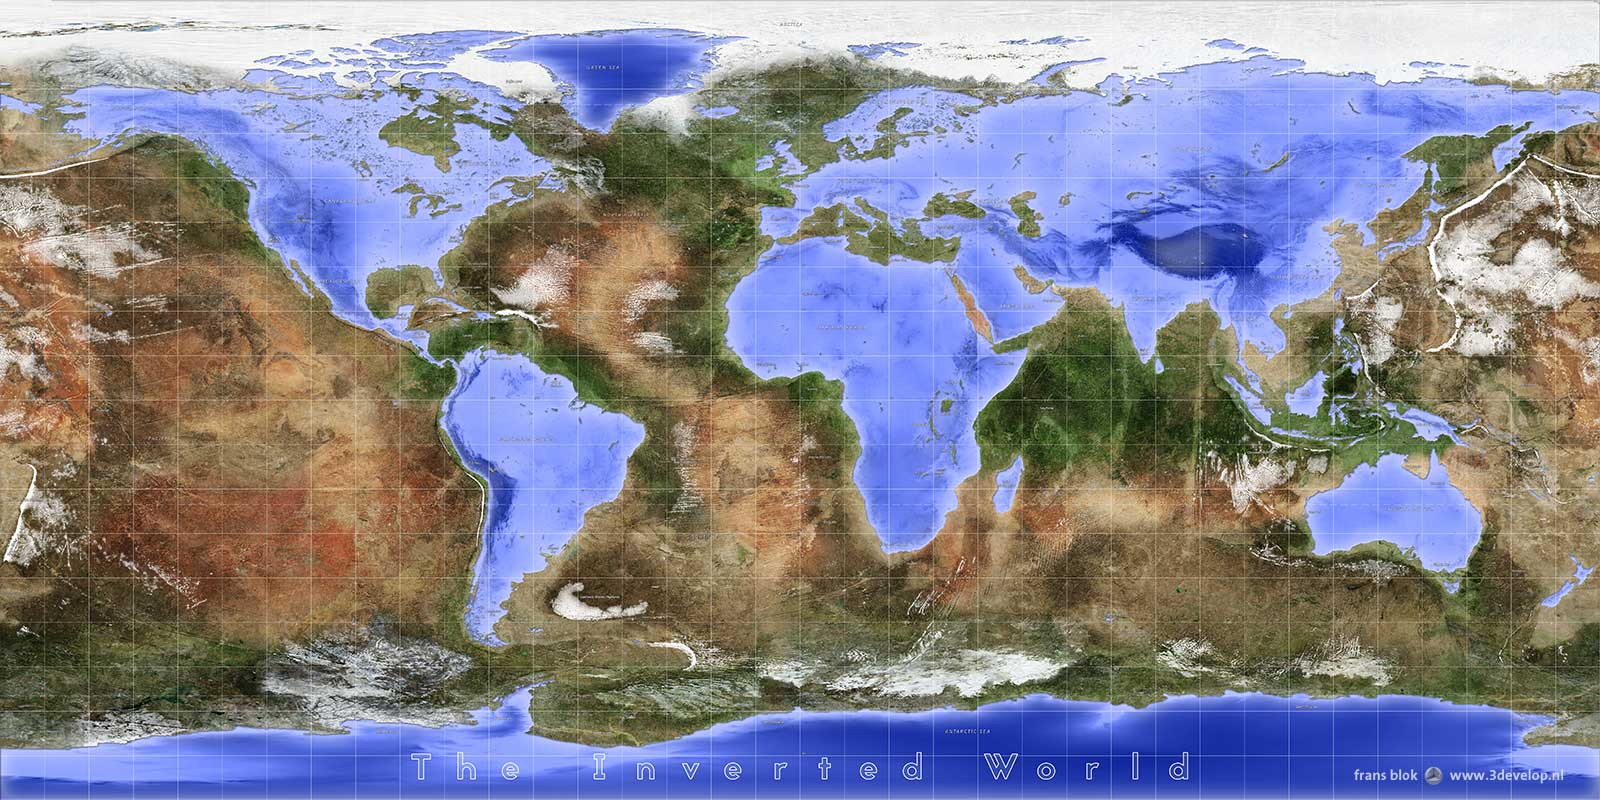 Picture of: The Inverted World Map Variations On A Blue Marble 3develop Image Blog